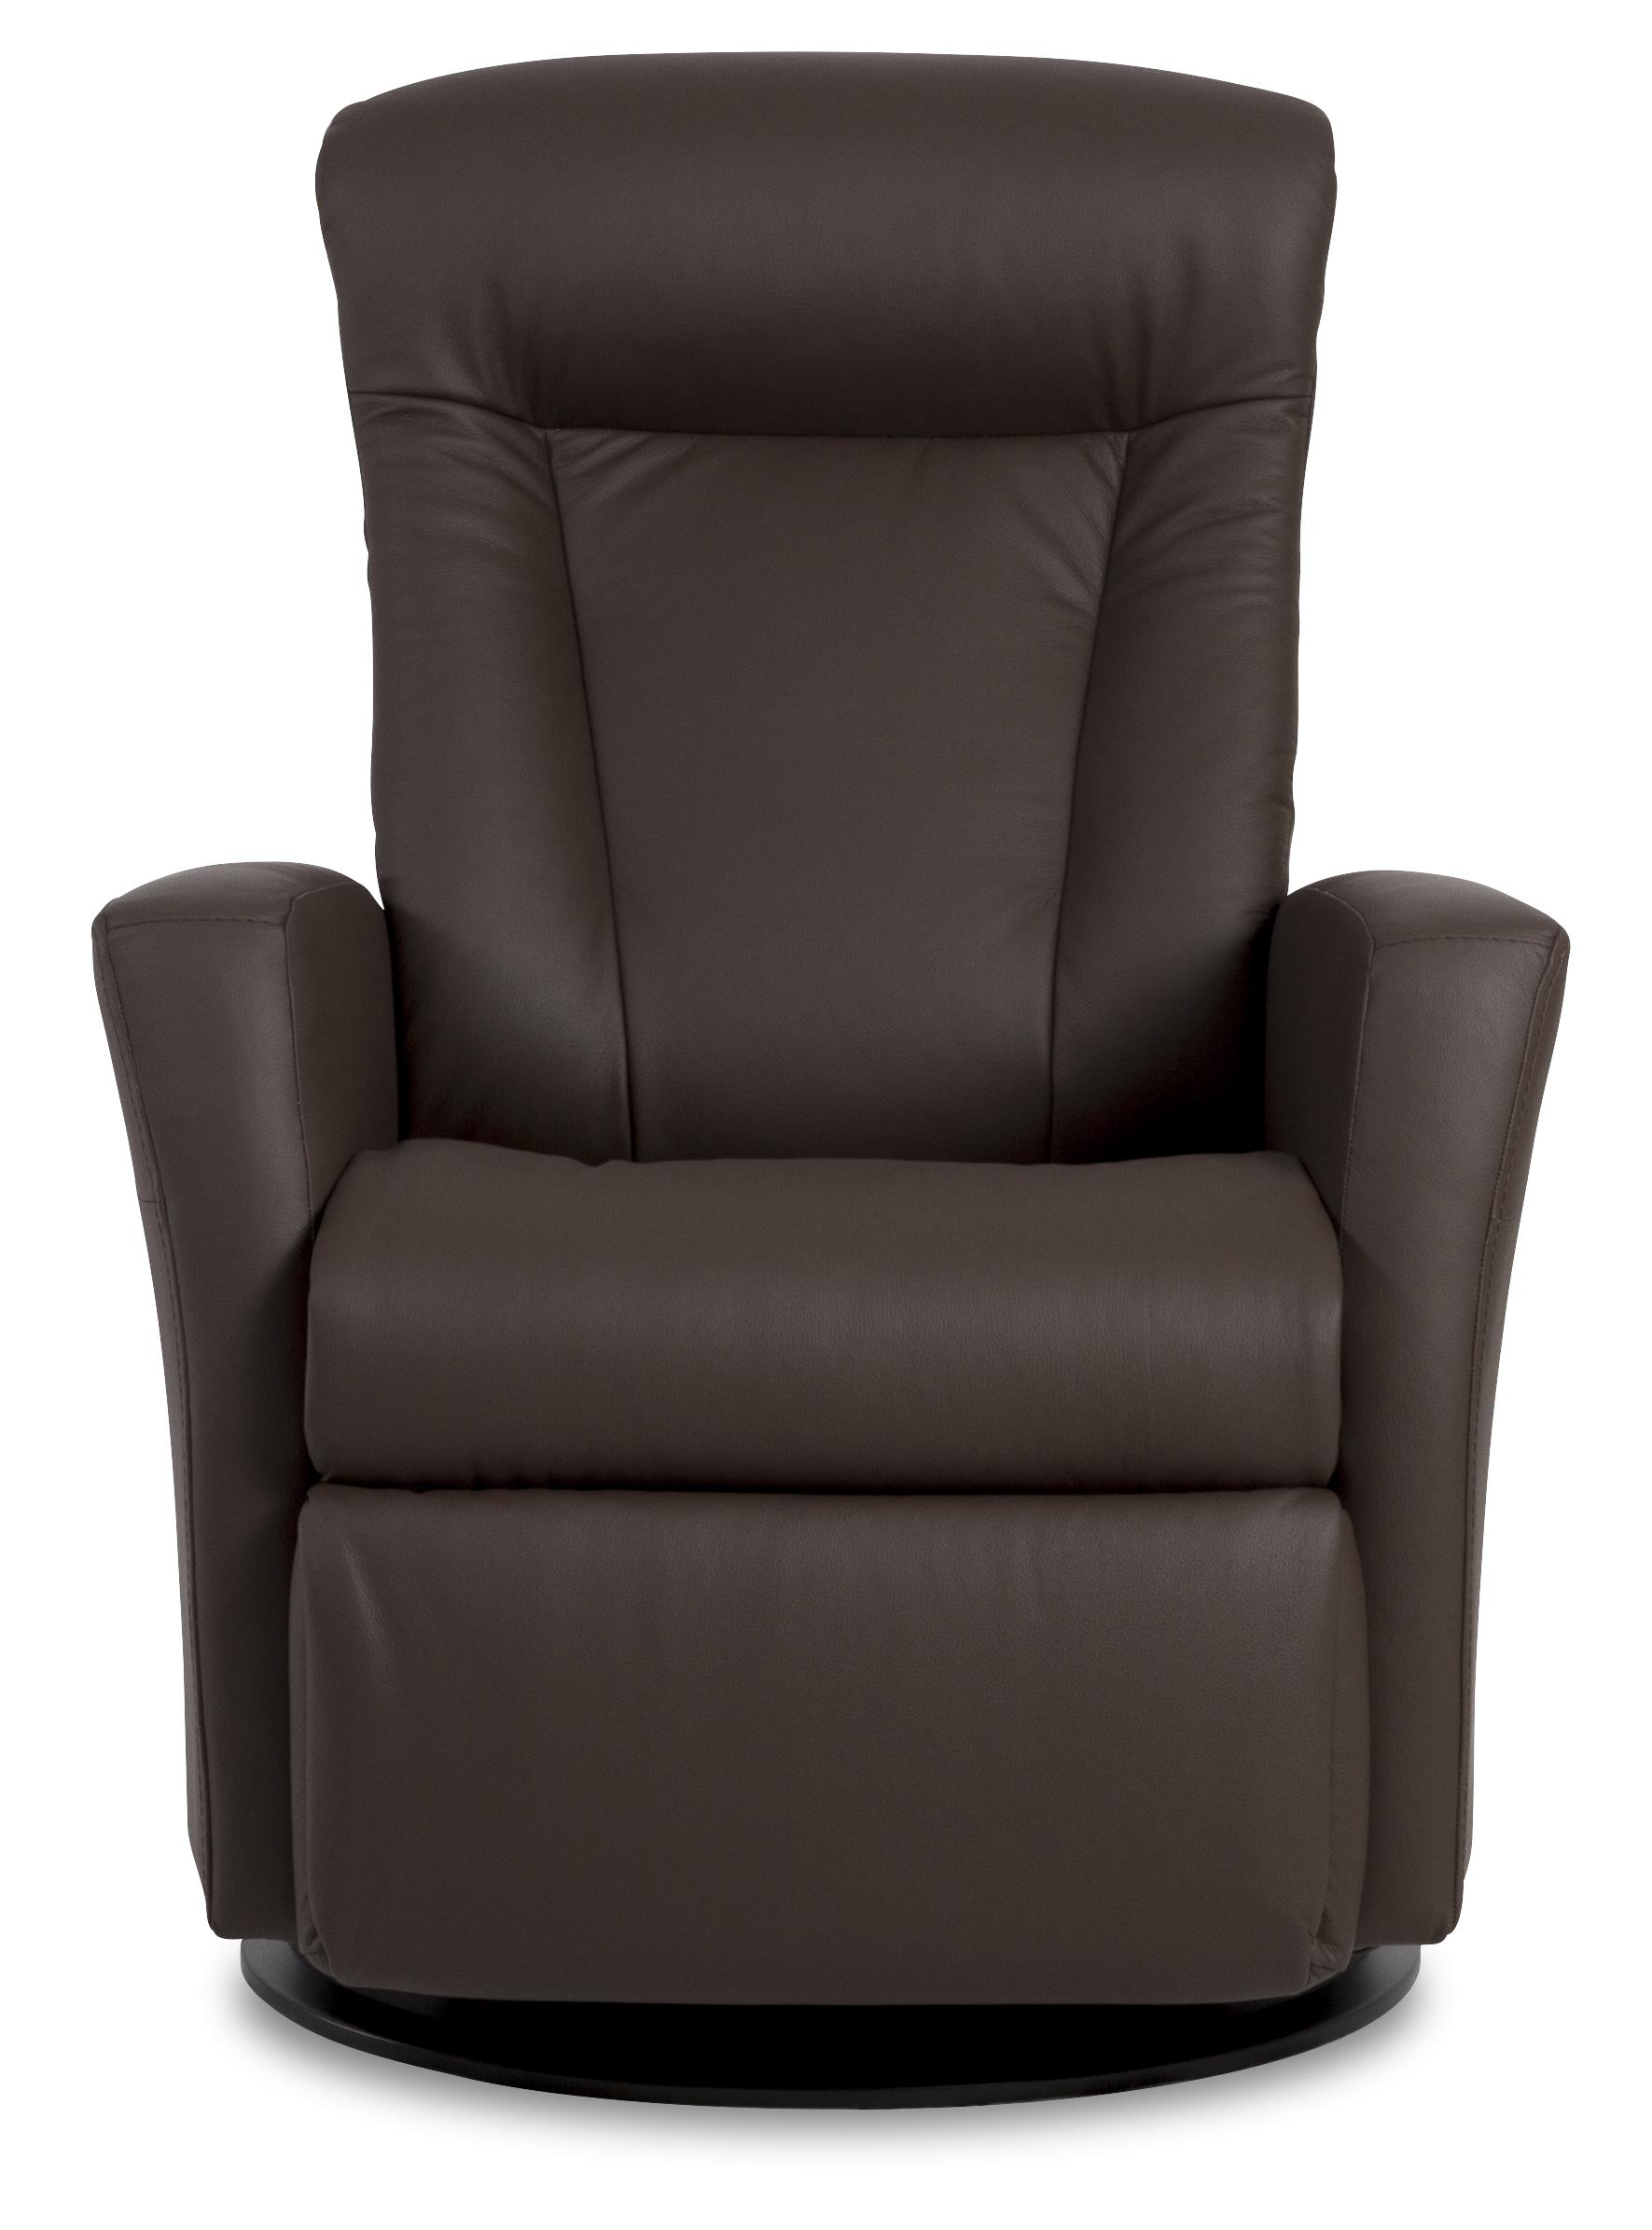 Img Norway Prince Prince Relaxer Recliner With Manual